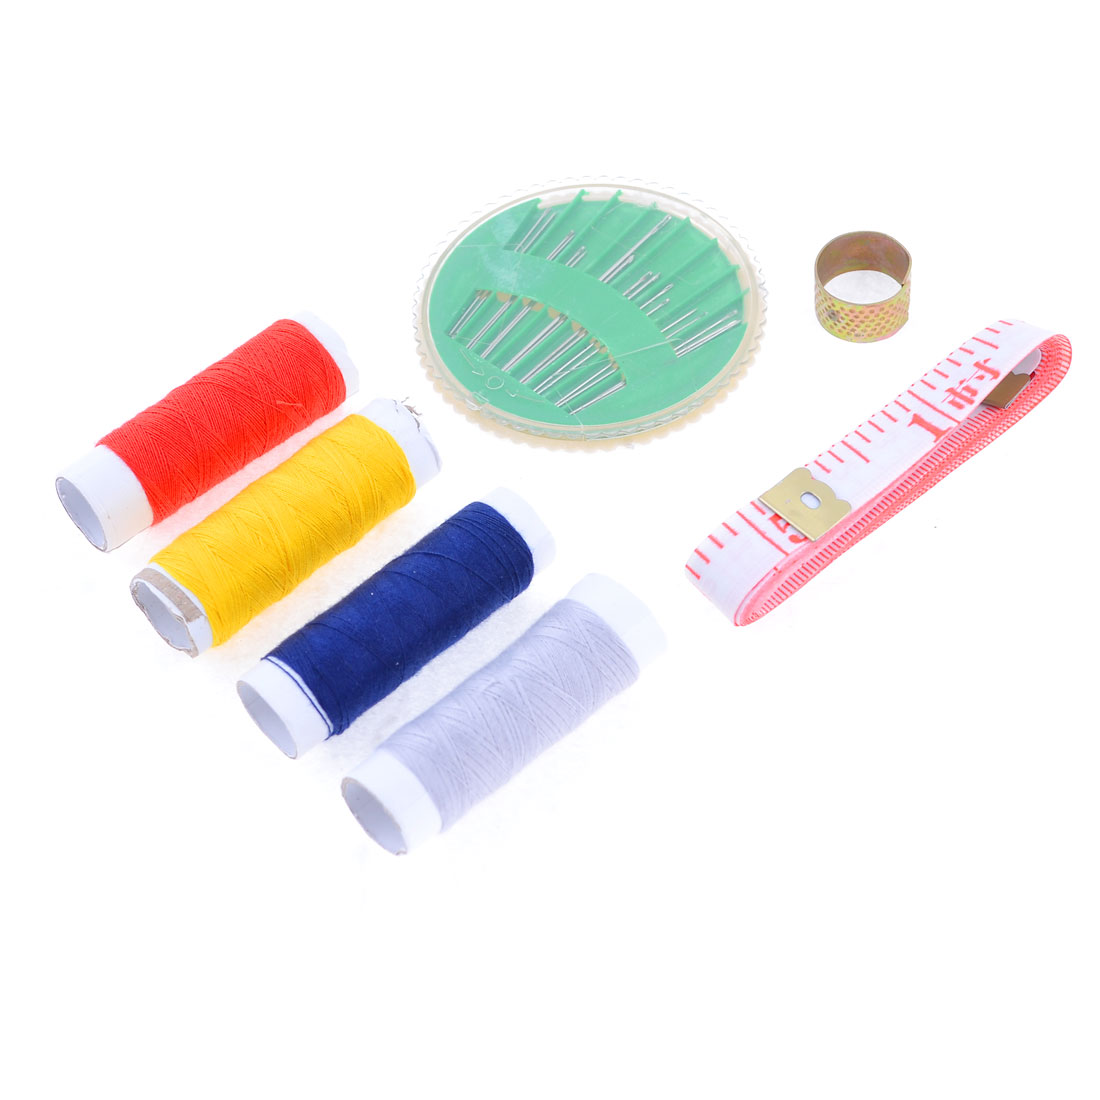 Family Sewing Kit Thimble Ring Thread Roller Needles Measuring Tape Set